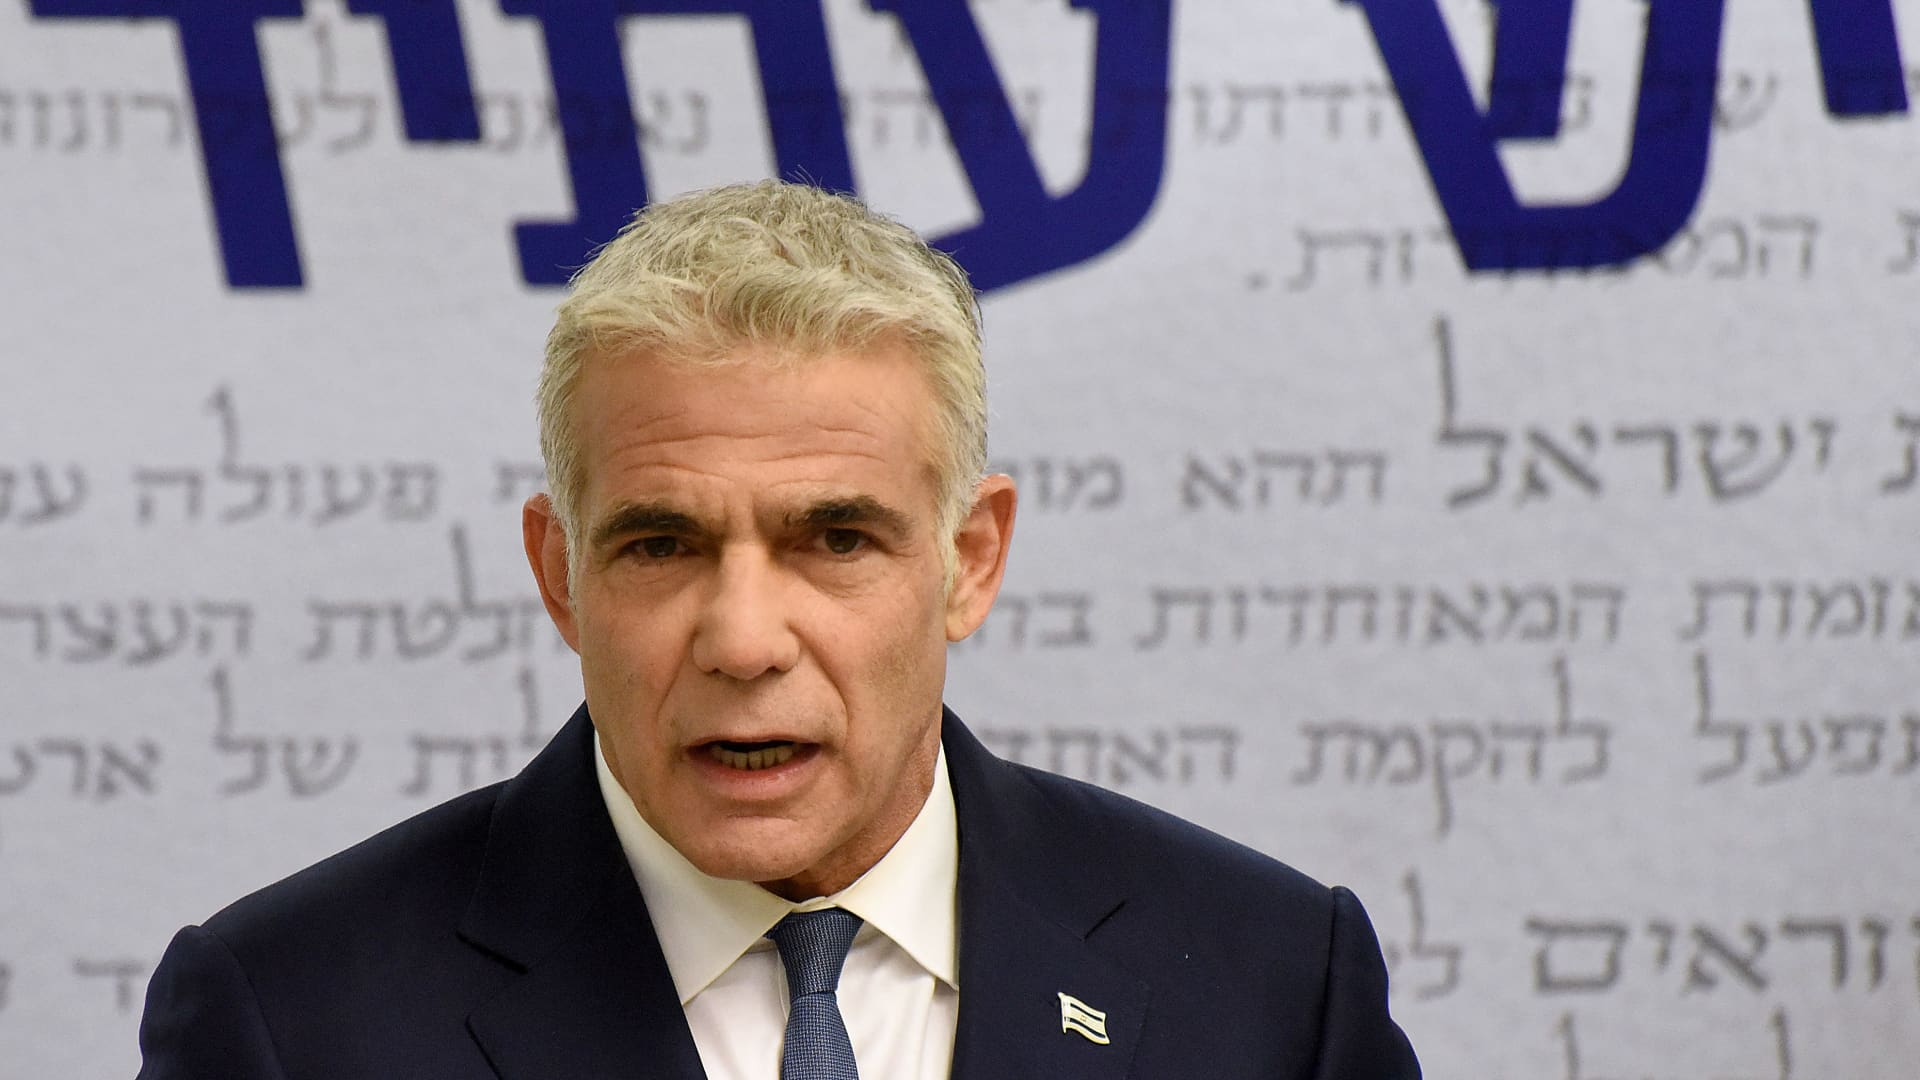 Israel's centrist opposition leader Yair Lapid delivers a statement to the press at the Knesset (Israeli parliament) in Jerusalem on May 31, 2021.